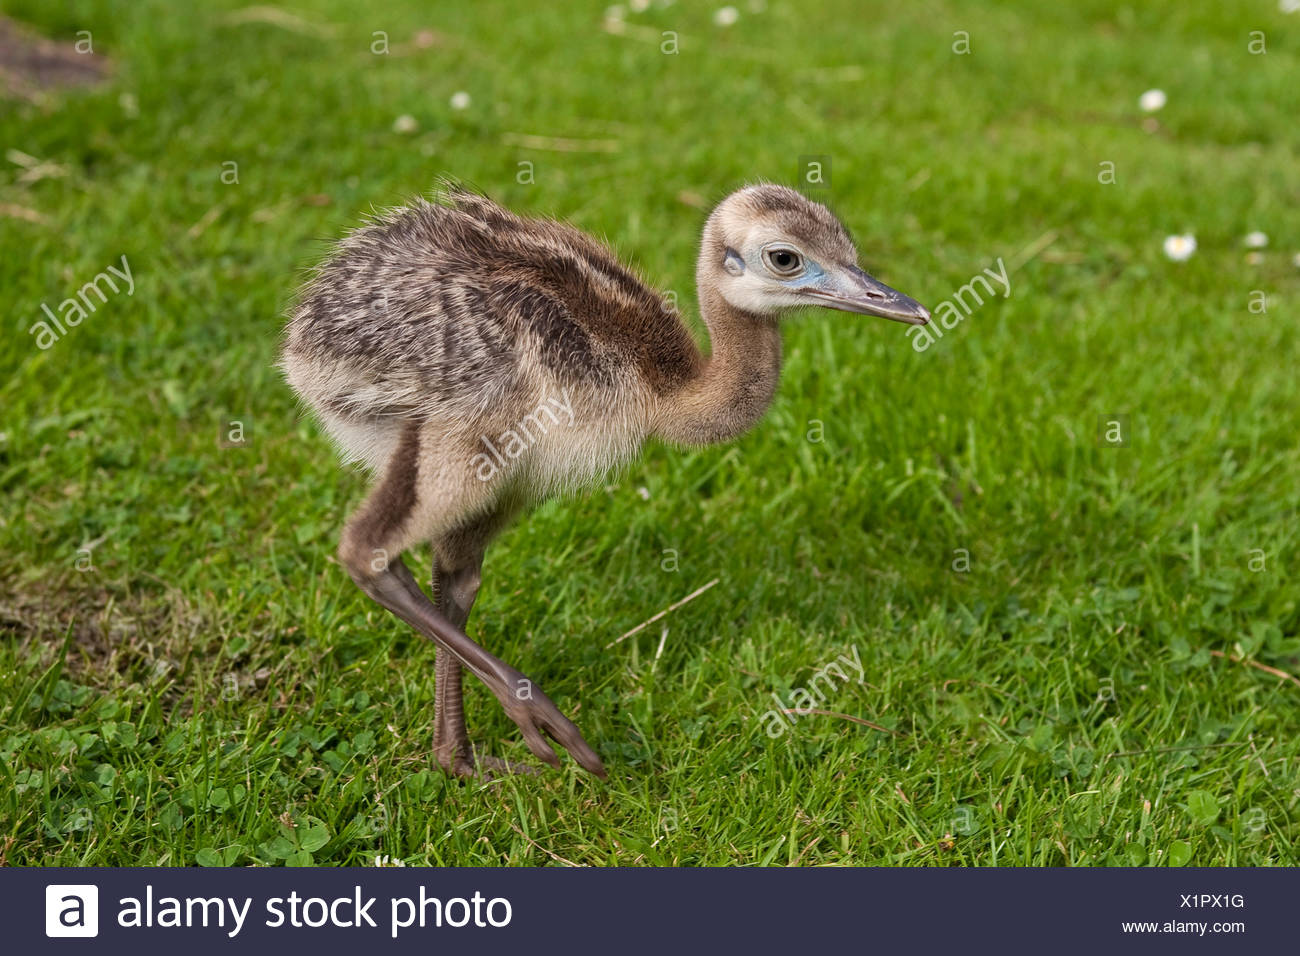 greater rhea (Rhea americana), chick walking on a lawn - Stock Image